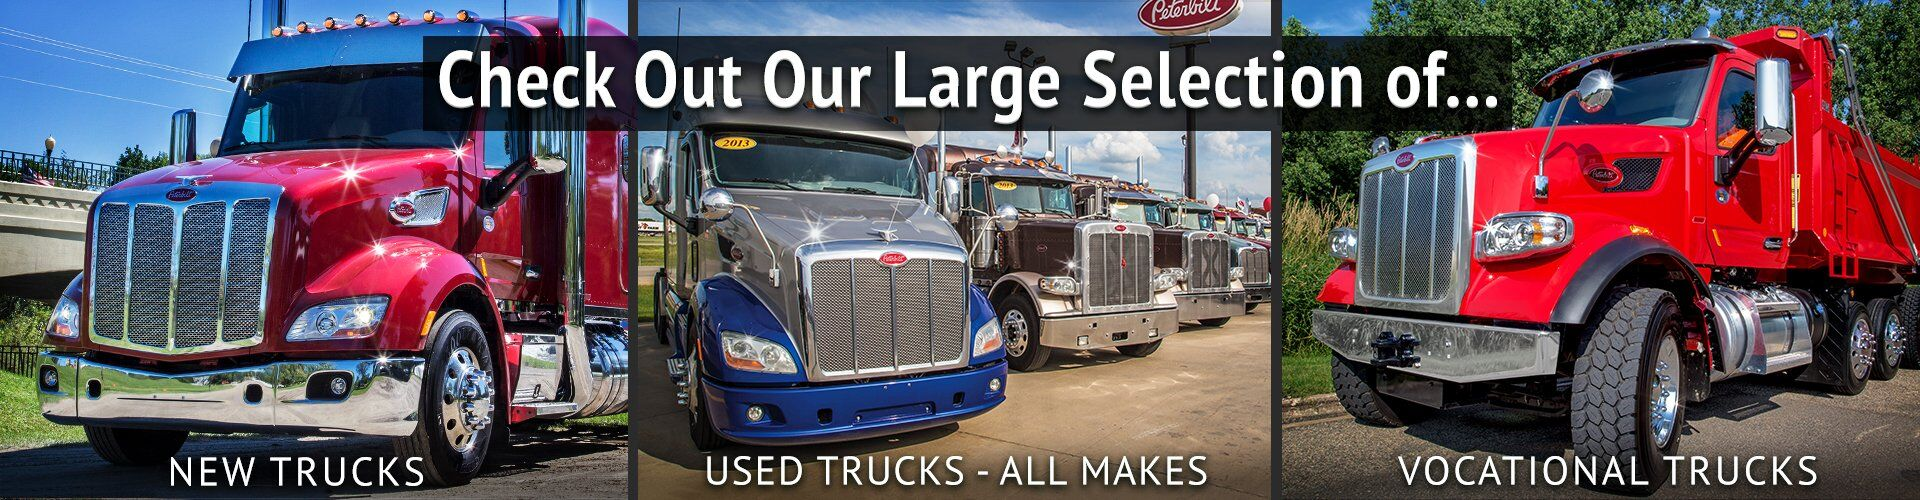 Check Out Our New, Used and Vocational Trucks